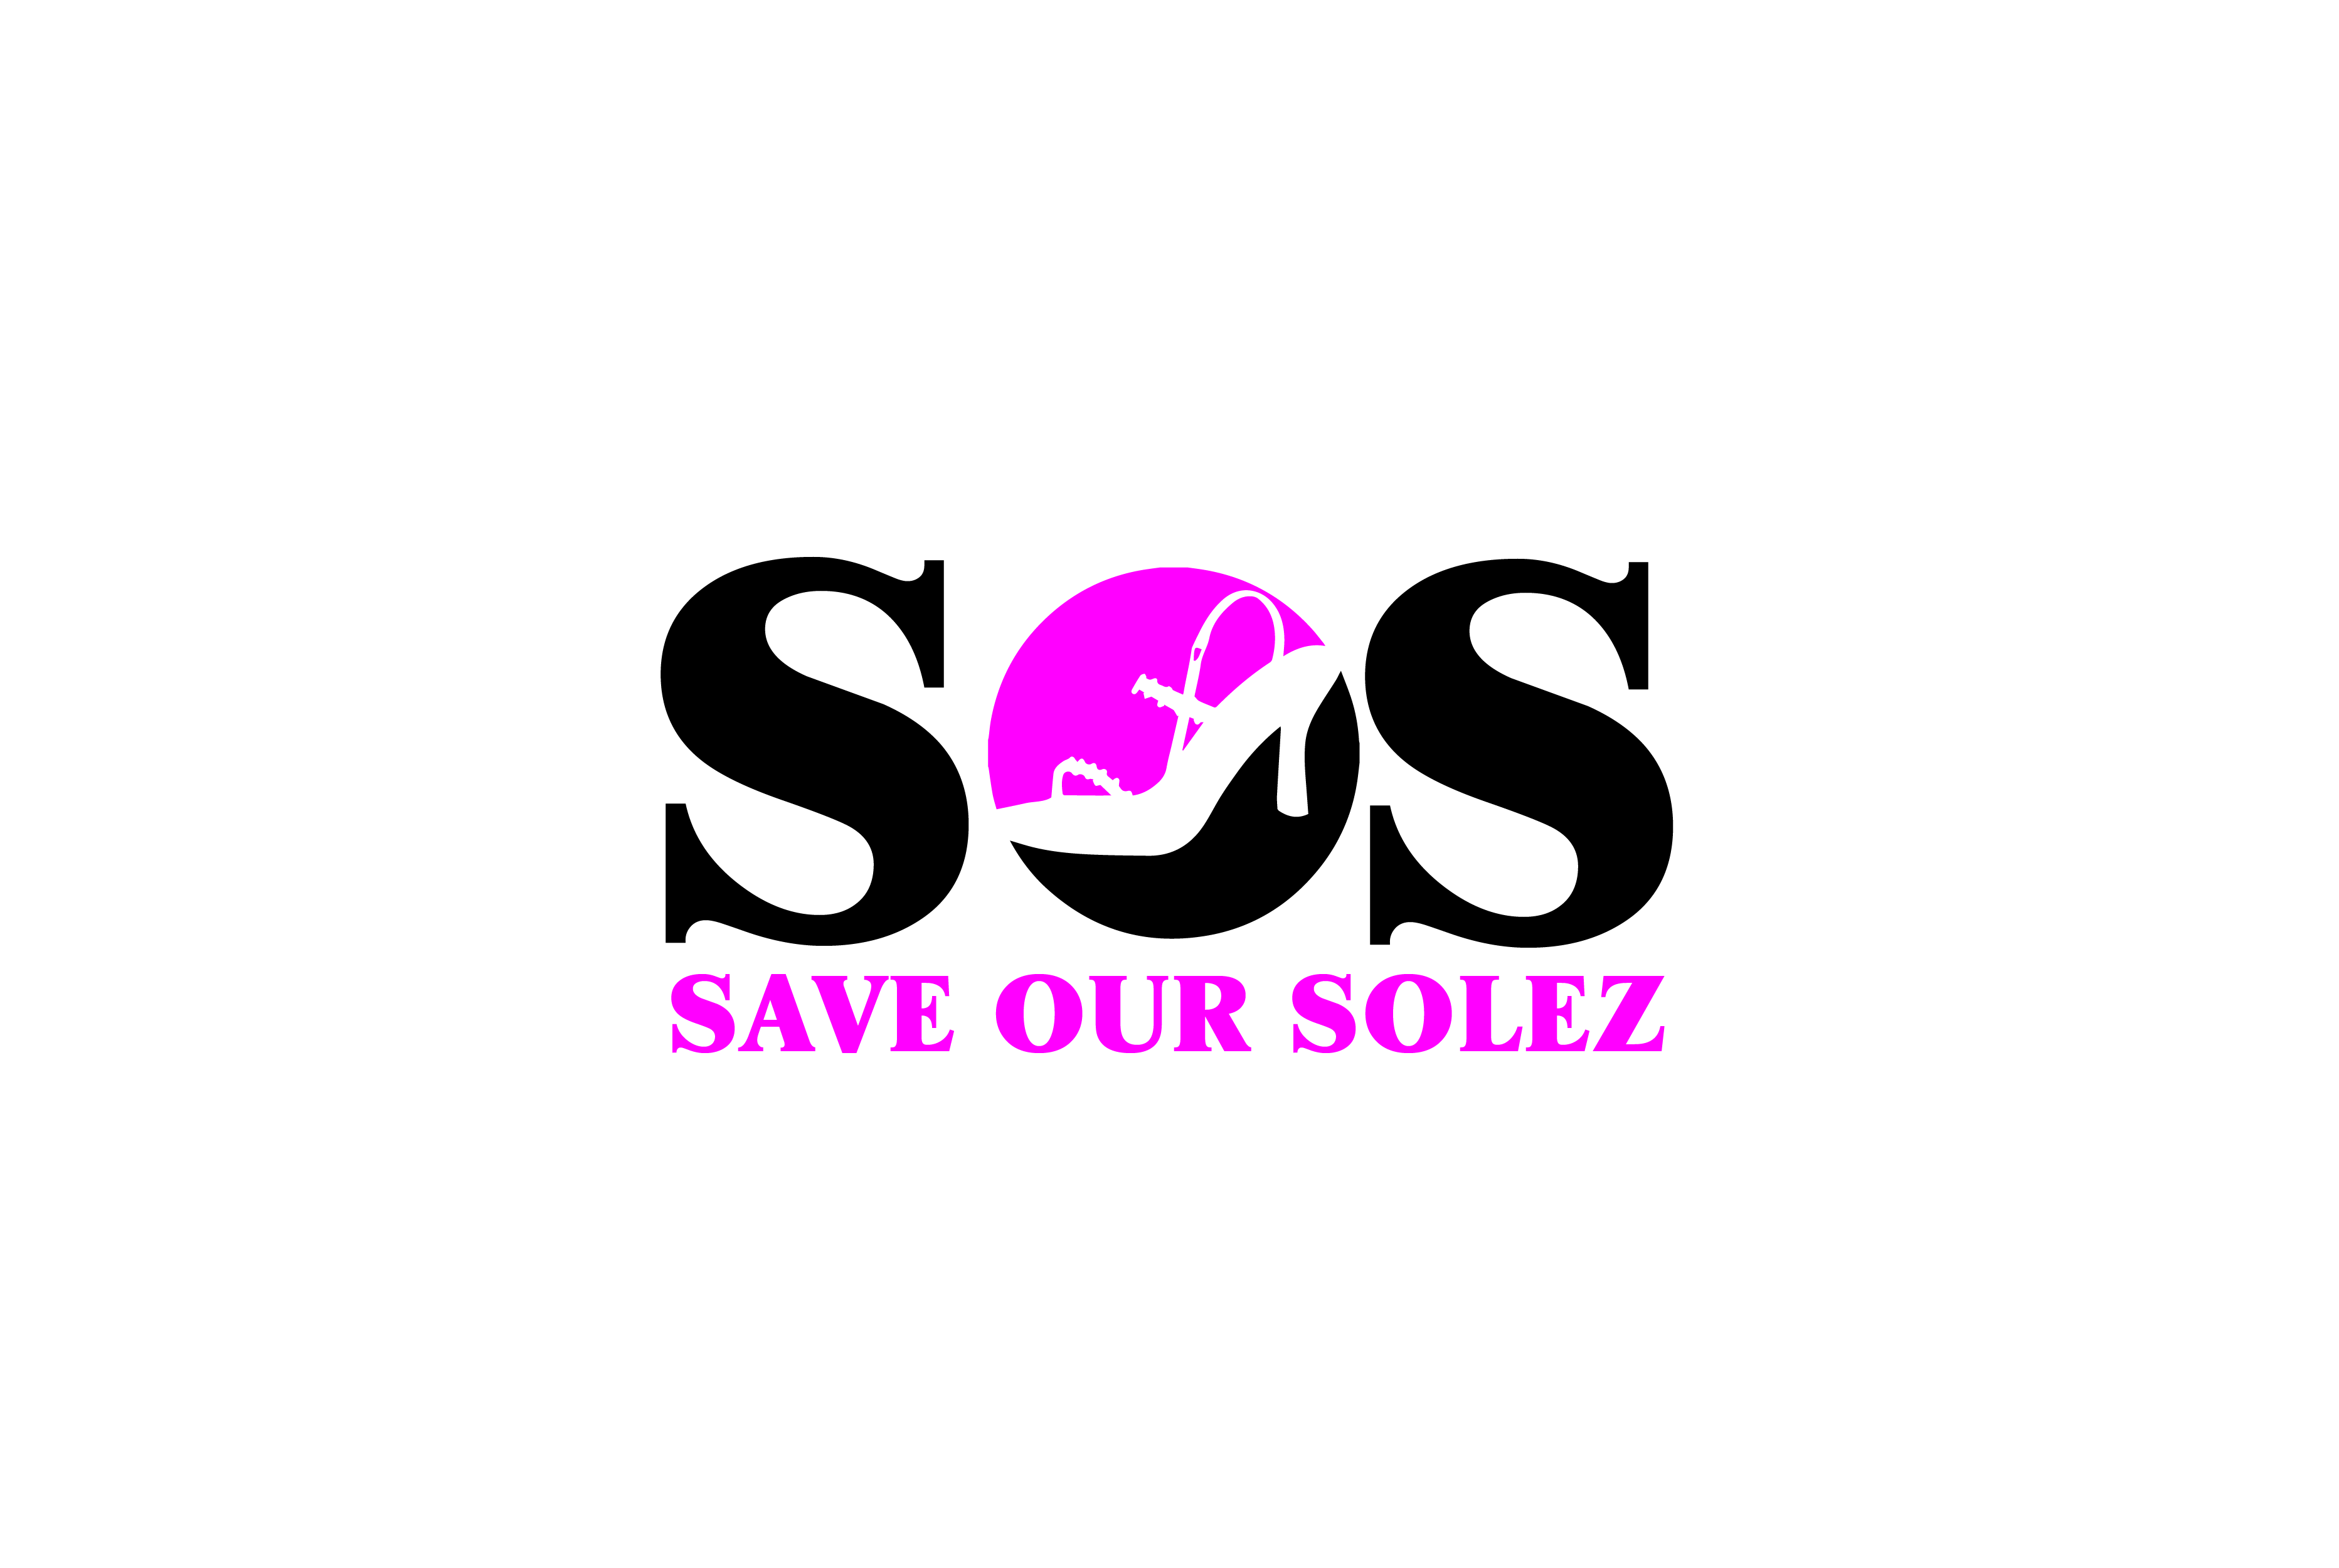 Logo Design by brands_in - Entry No. 26 in the Logo Design Contest Captivating Logo Design for Save Our Solez.